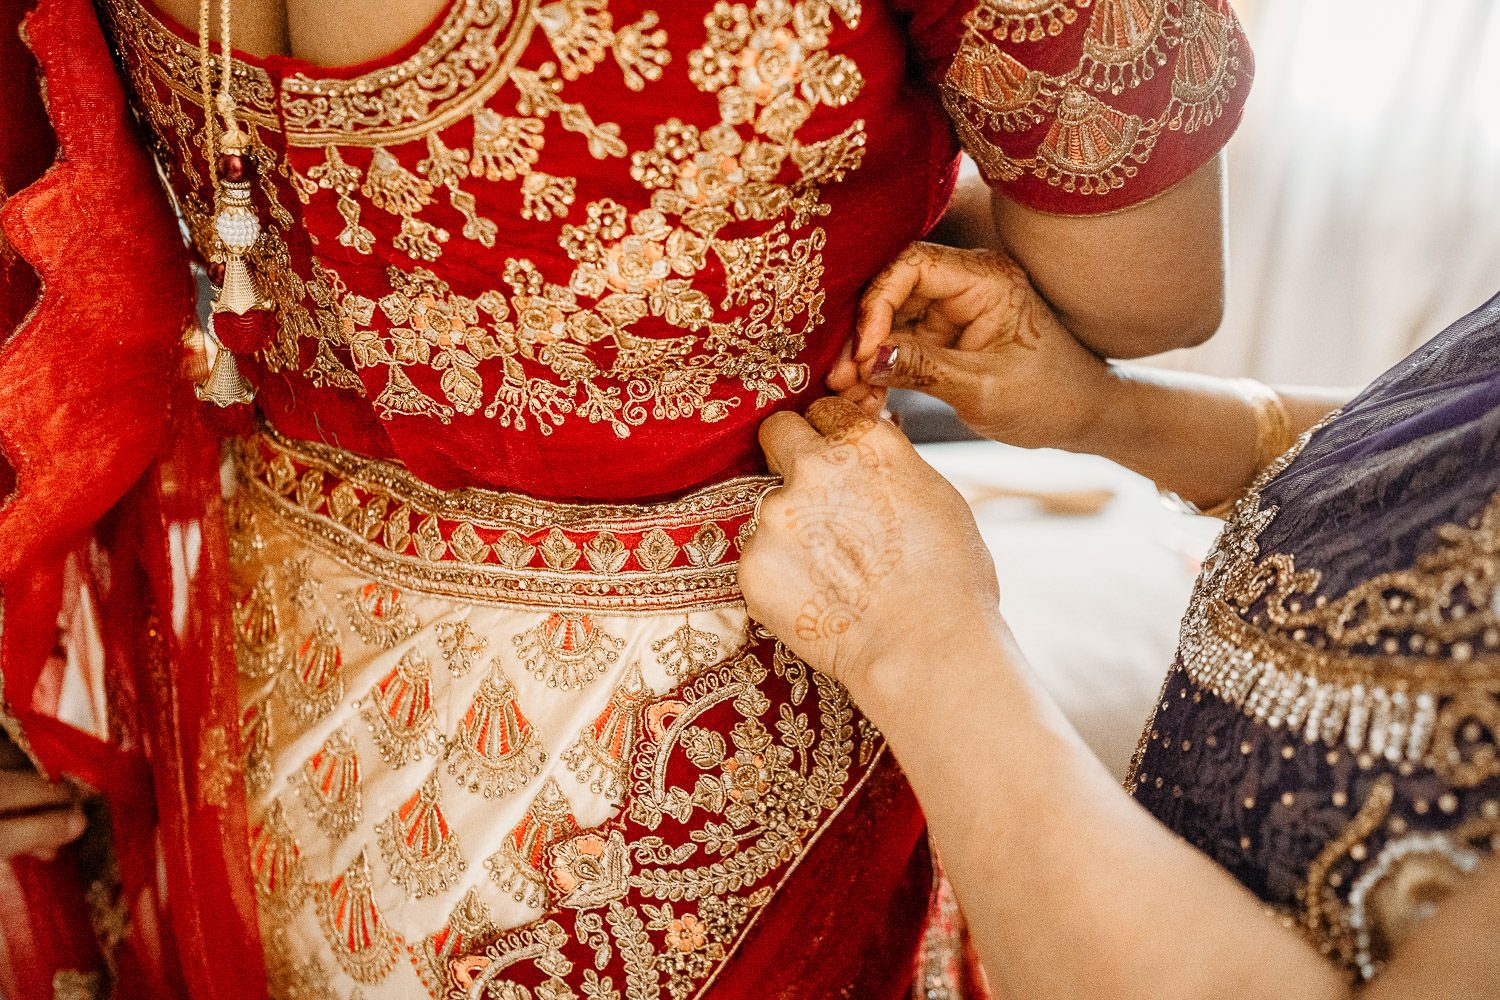 brides mother pinning red sari for bride